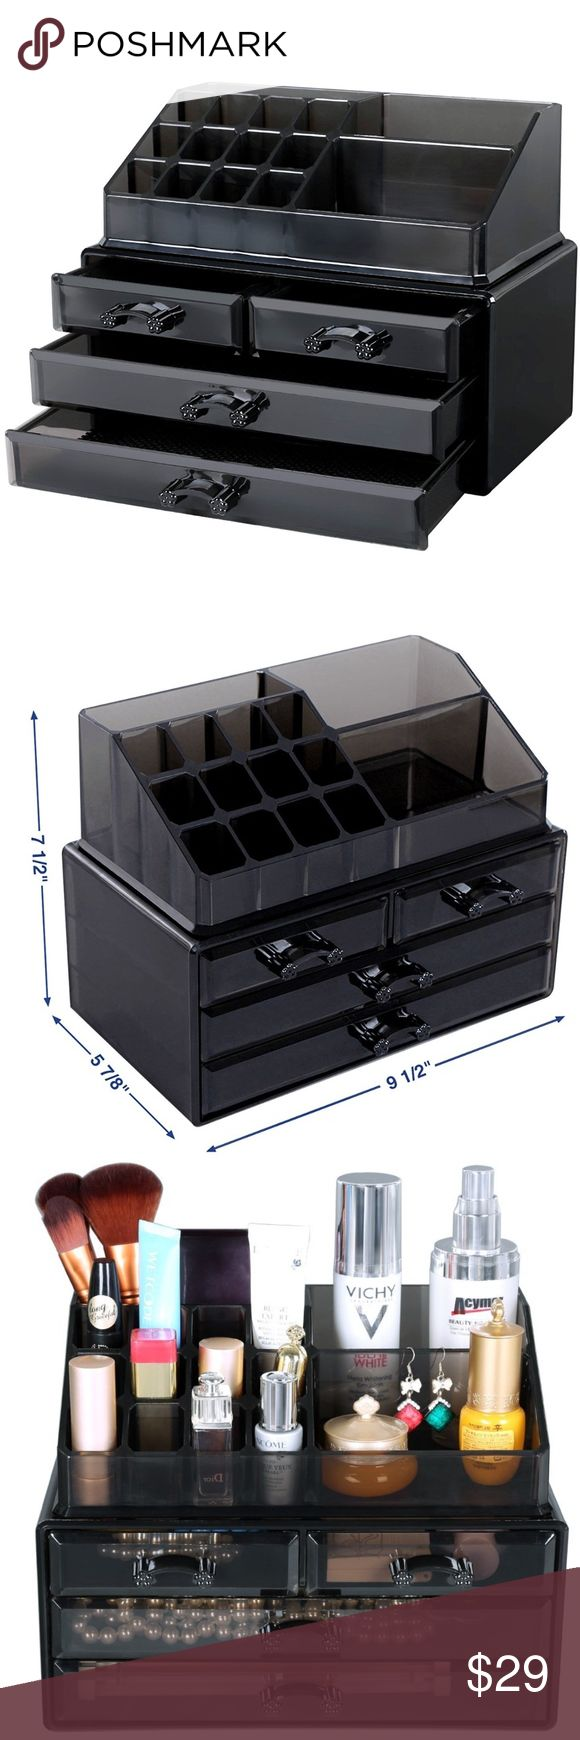 Makeup Organizer ‍✨ Makeup organizer with 4 drawers, it display with 15 top compartments, and 2 pieces set black UJMU04B - It Makes your cosmetics look tidy and looks great on your vanity -Hold at least 20 lipsticks, 10 brushes, 5 face powders, 5 mascaras, 5 eye liners, 2 large shadow palettes and other small everyday collection, tidy up your dresser -High quality material for long time use; Easy to clean by wet cloth or water - So get it honey SONGMICS